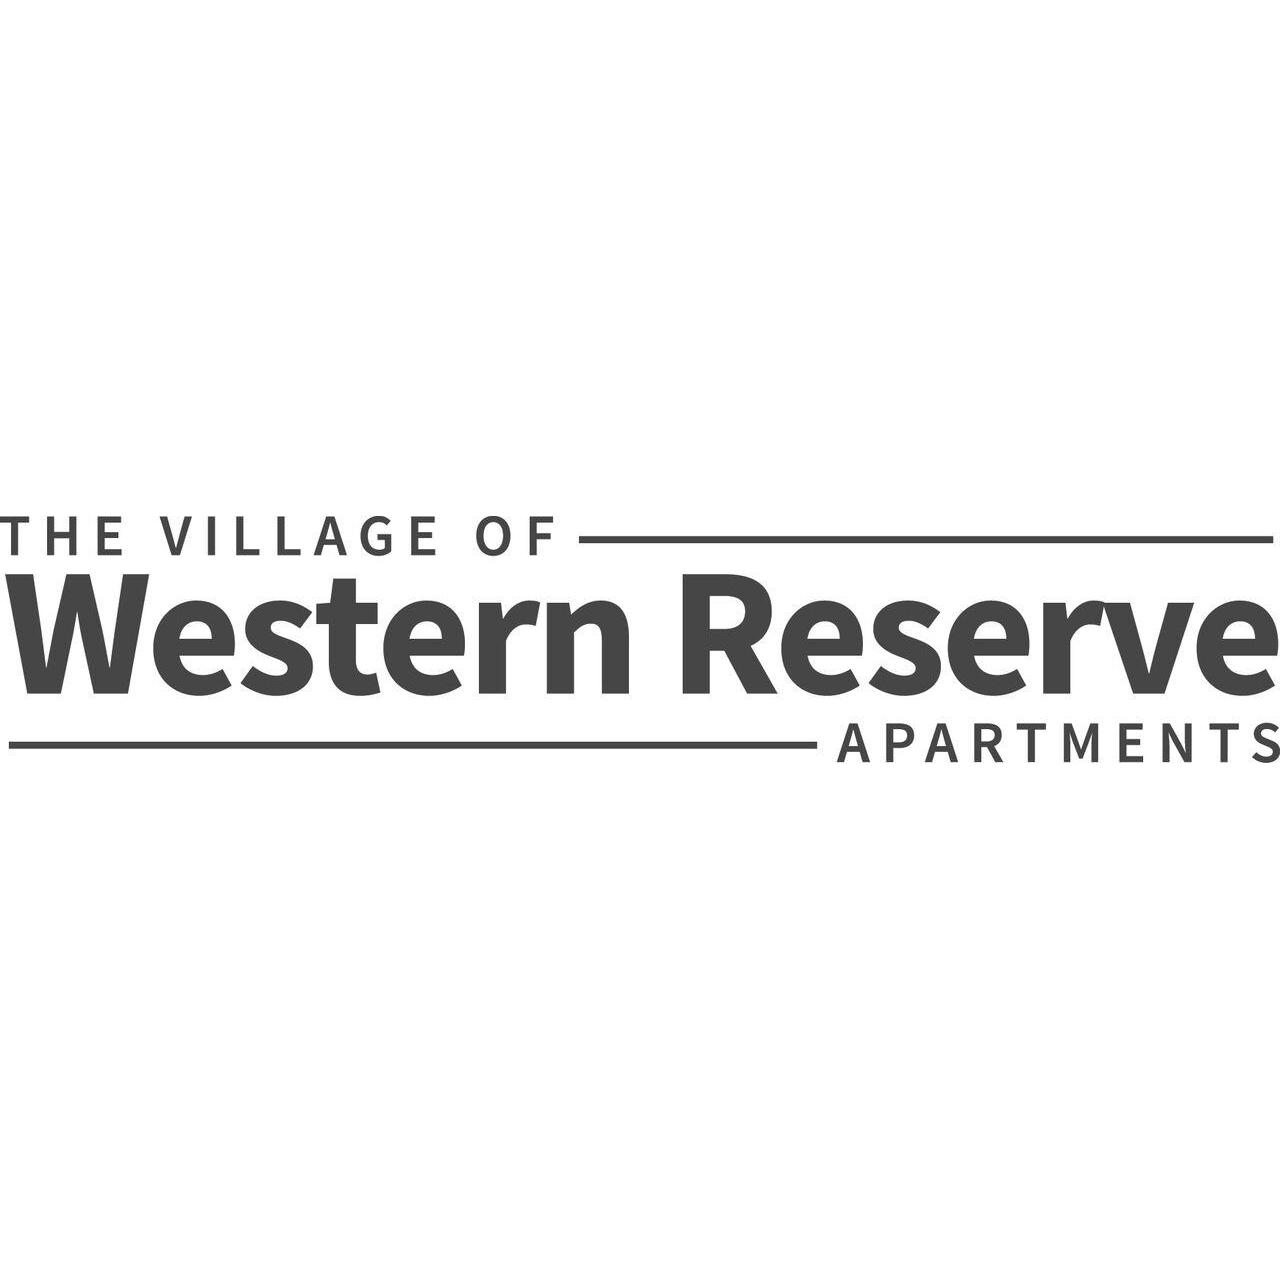 The Village Of Western Reserve Apartments